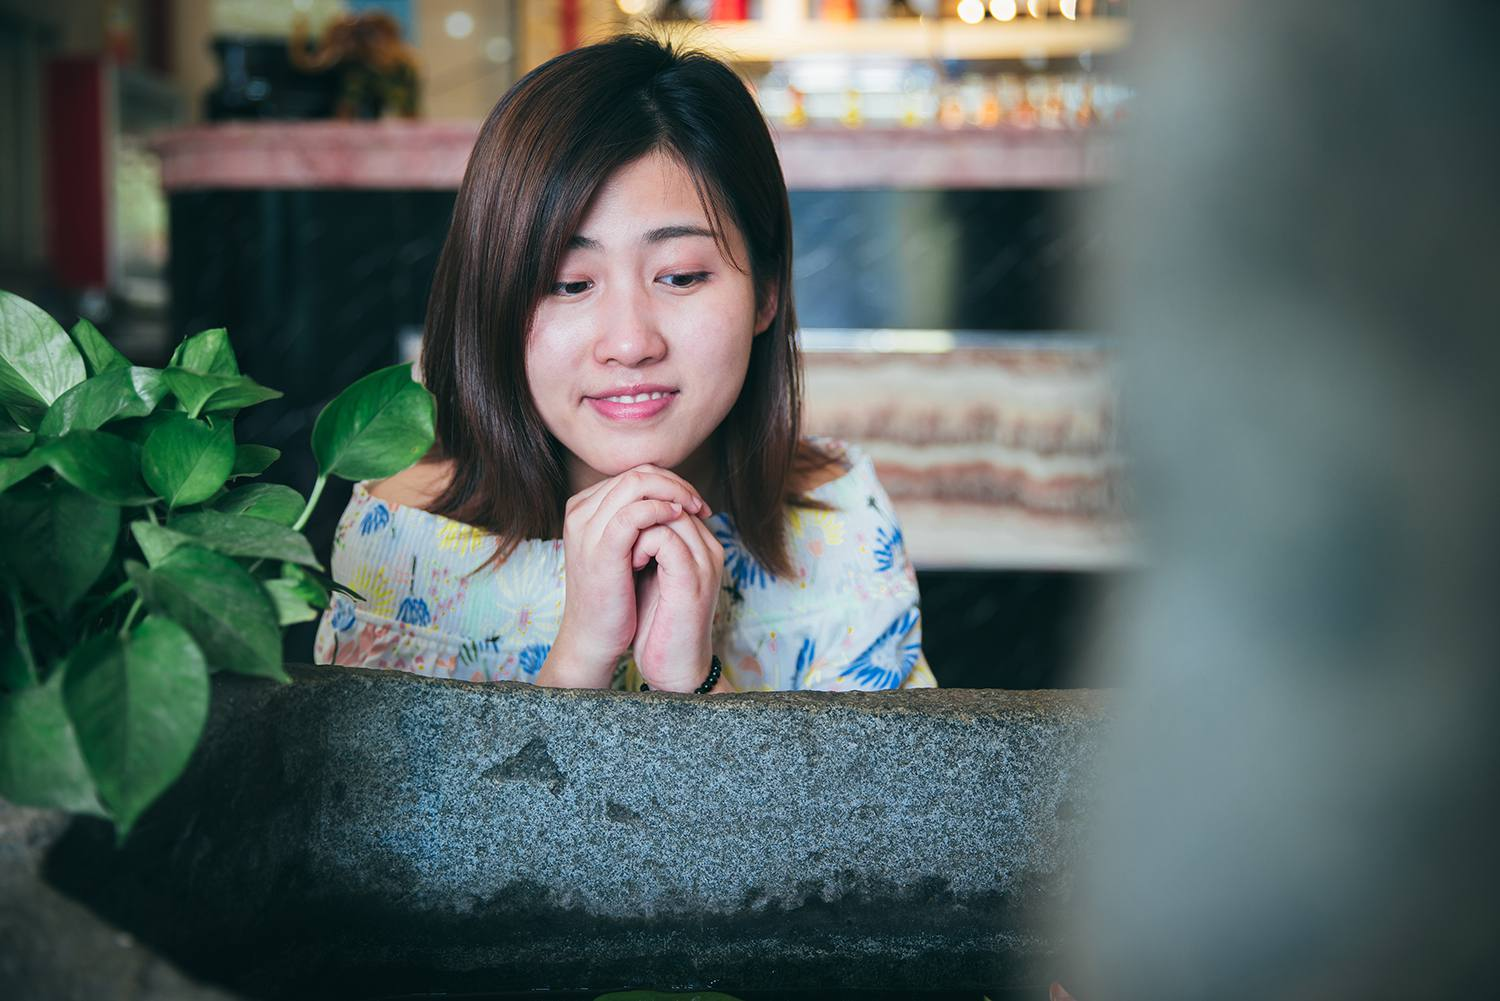 Close up of pretty girl in a prayer position before a goldfish bowl,Shanghai,China.